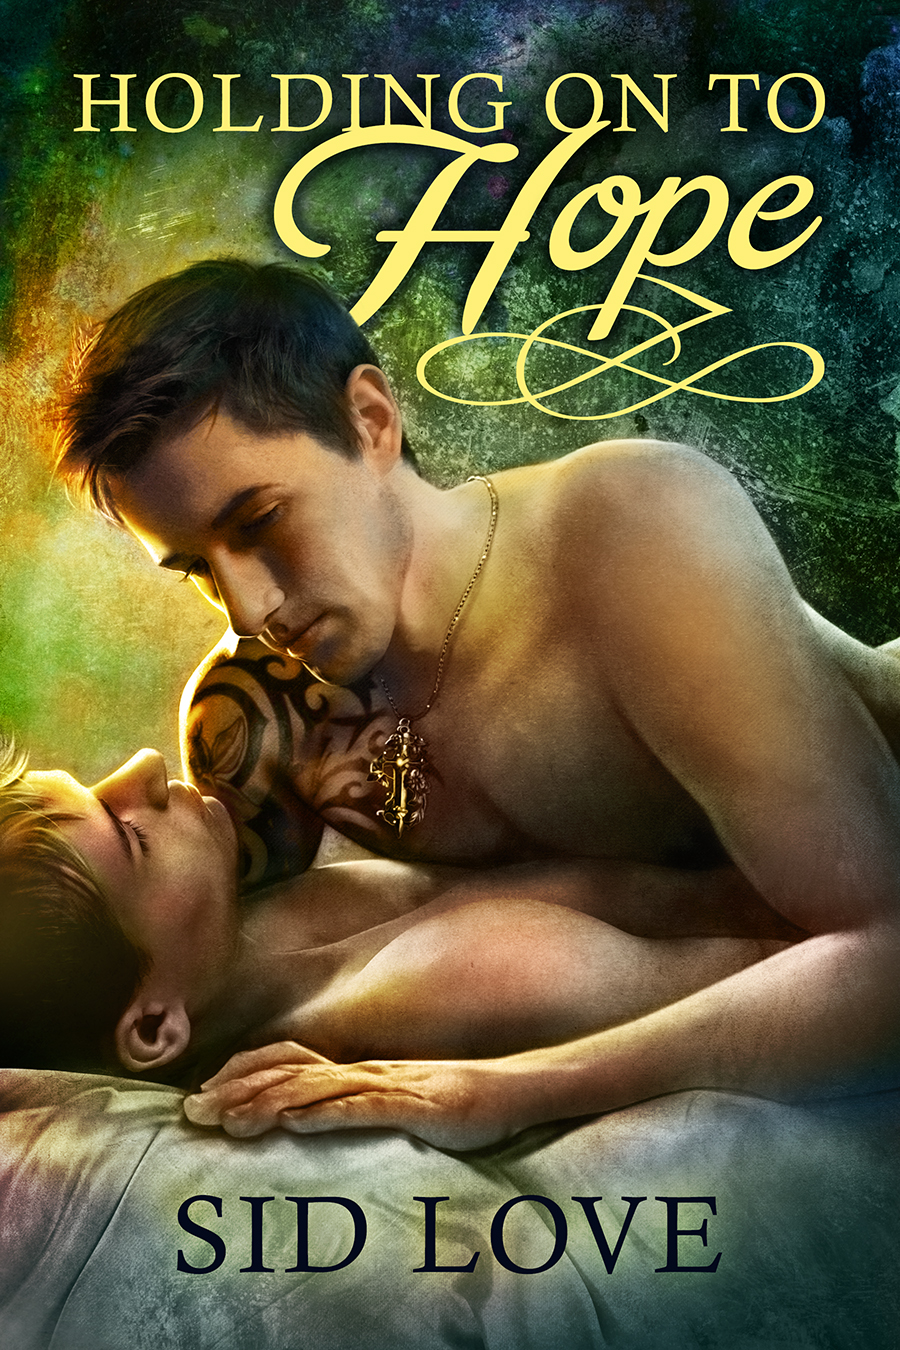 Review: Holding on to Hope by Sid Love